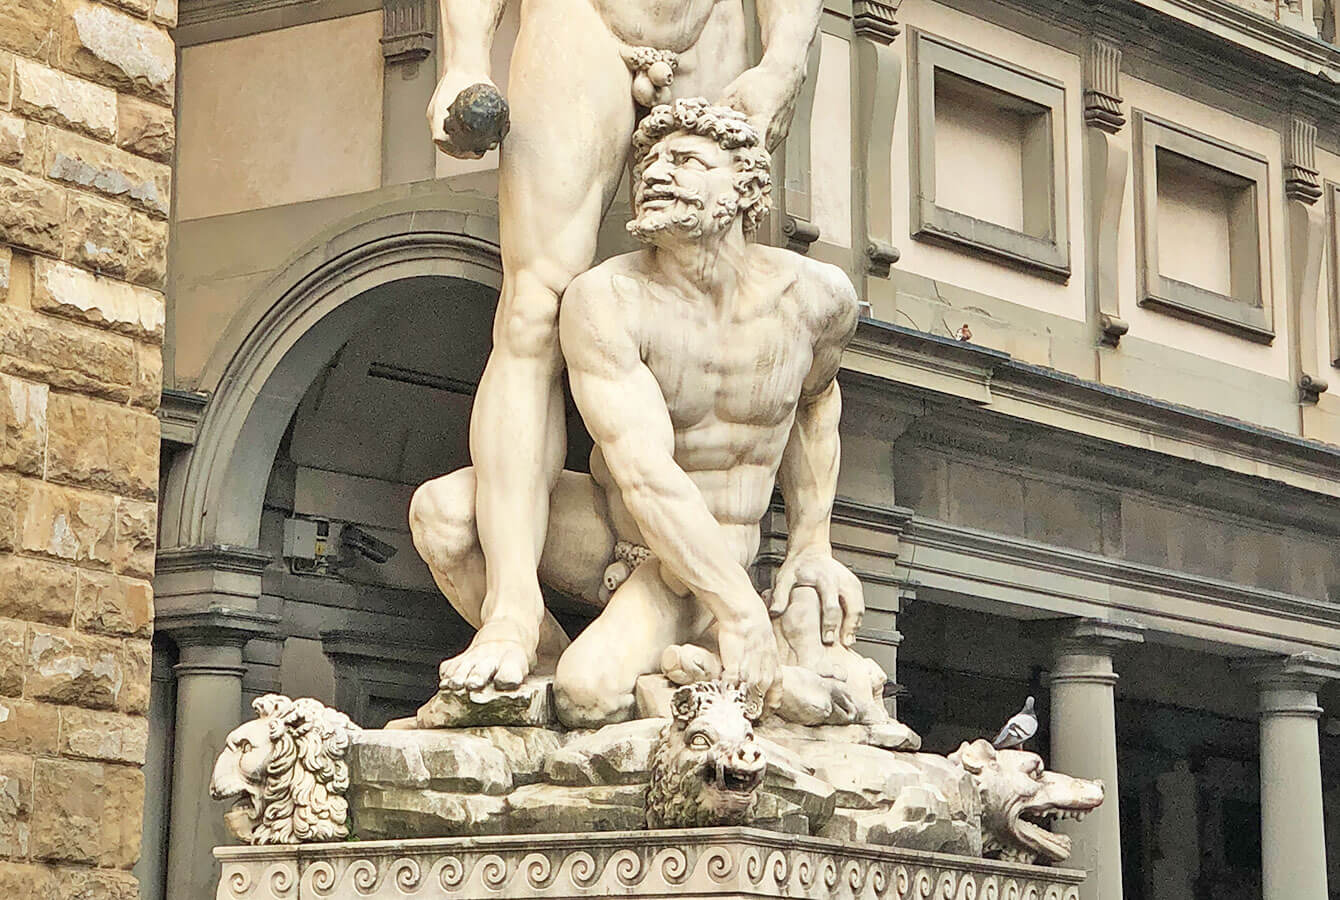 Sculpture of Hercule et Cacus Bandinelli on the Piazza della Signoria